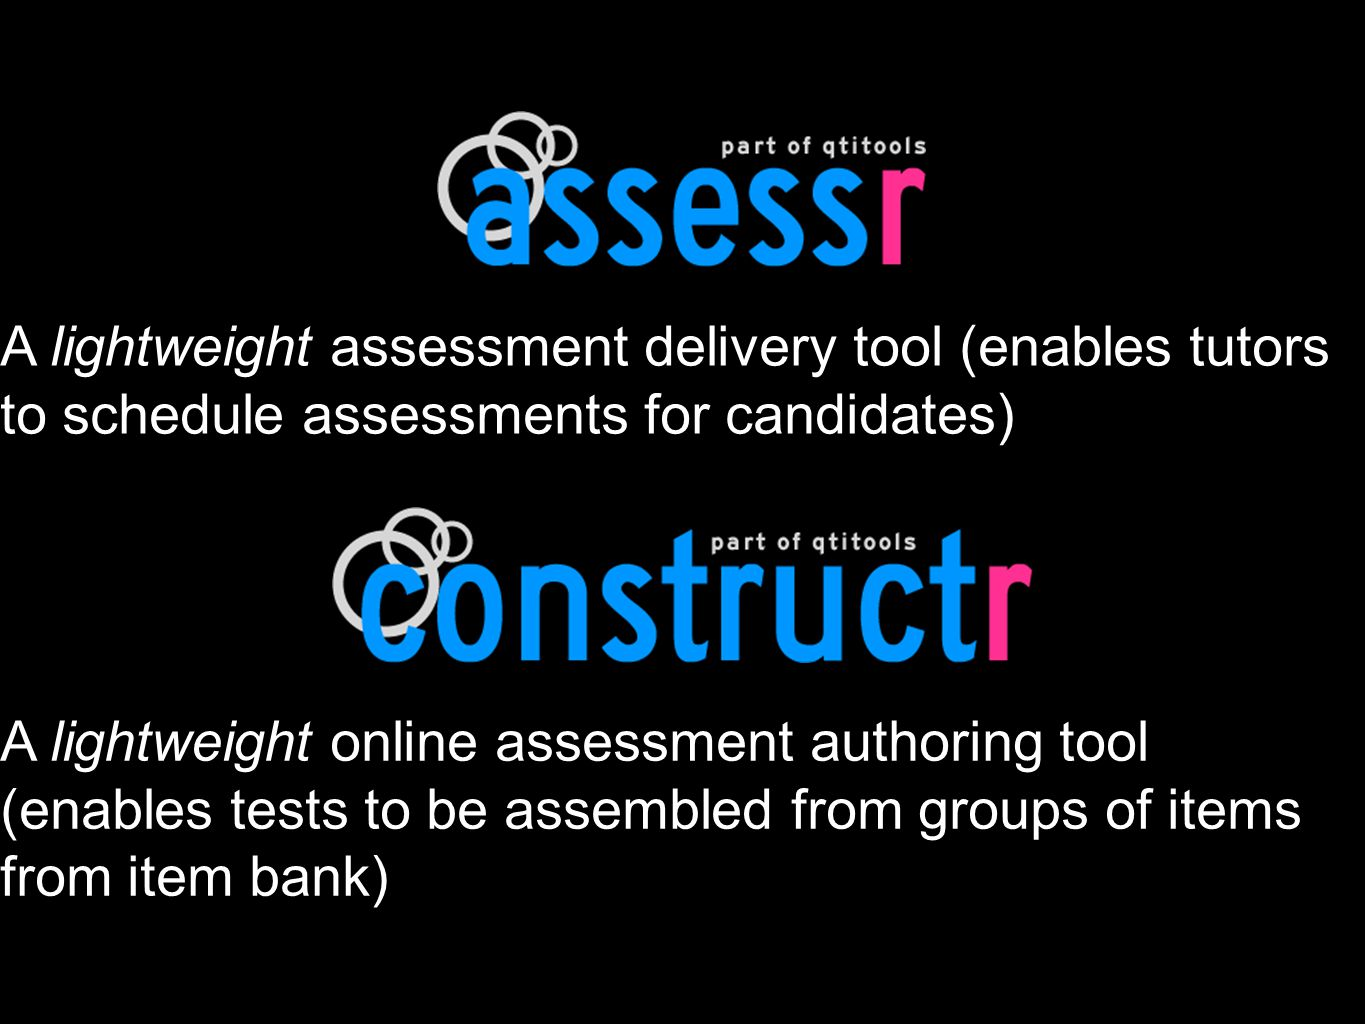 A lightweight assessment delivery tool (enables tutors to schedule assessments for candidates) A lightweight online assessment authoring tool (enables tests to be assembled from groups of items from item bank)